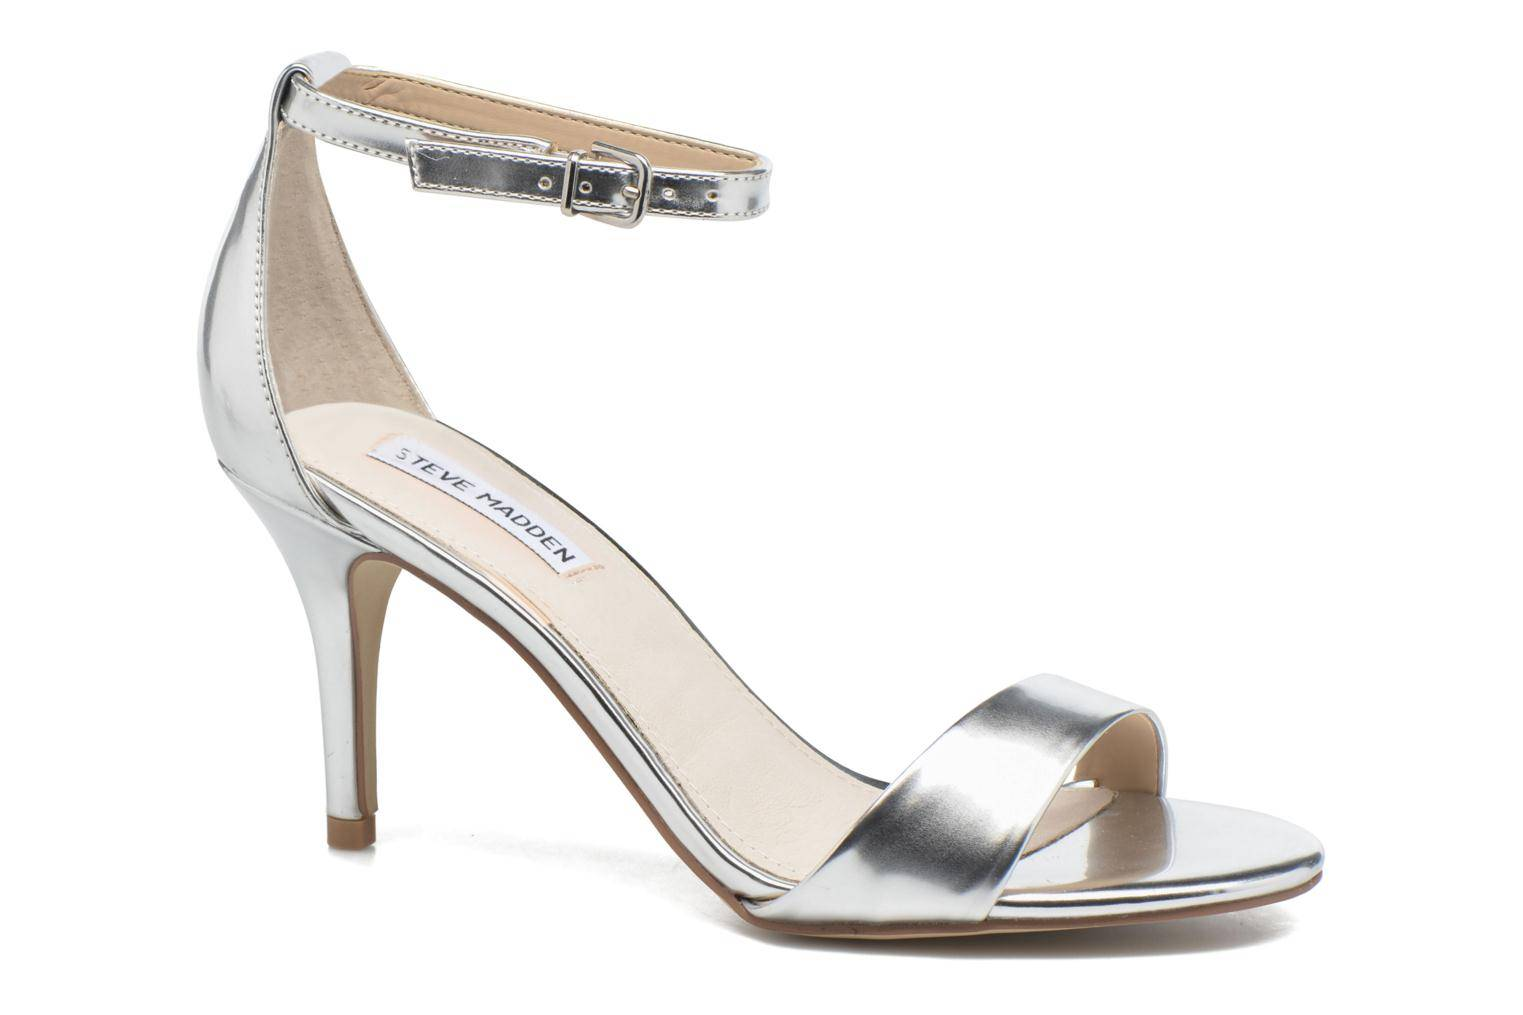 Steve Madden - Sillly Sandal by  - Sandaalit Naisille  / Hopea